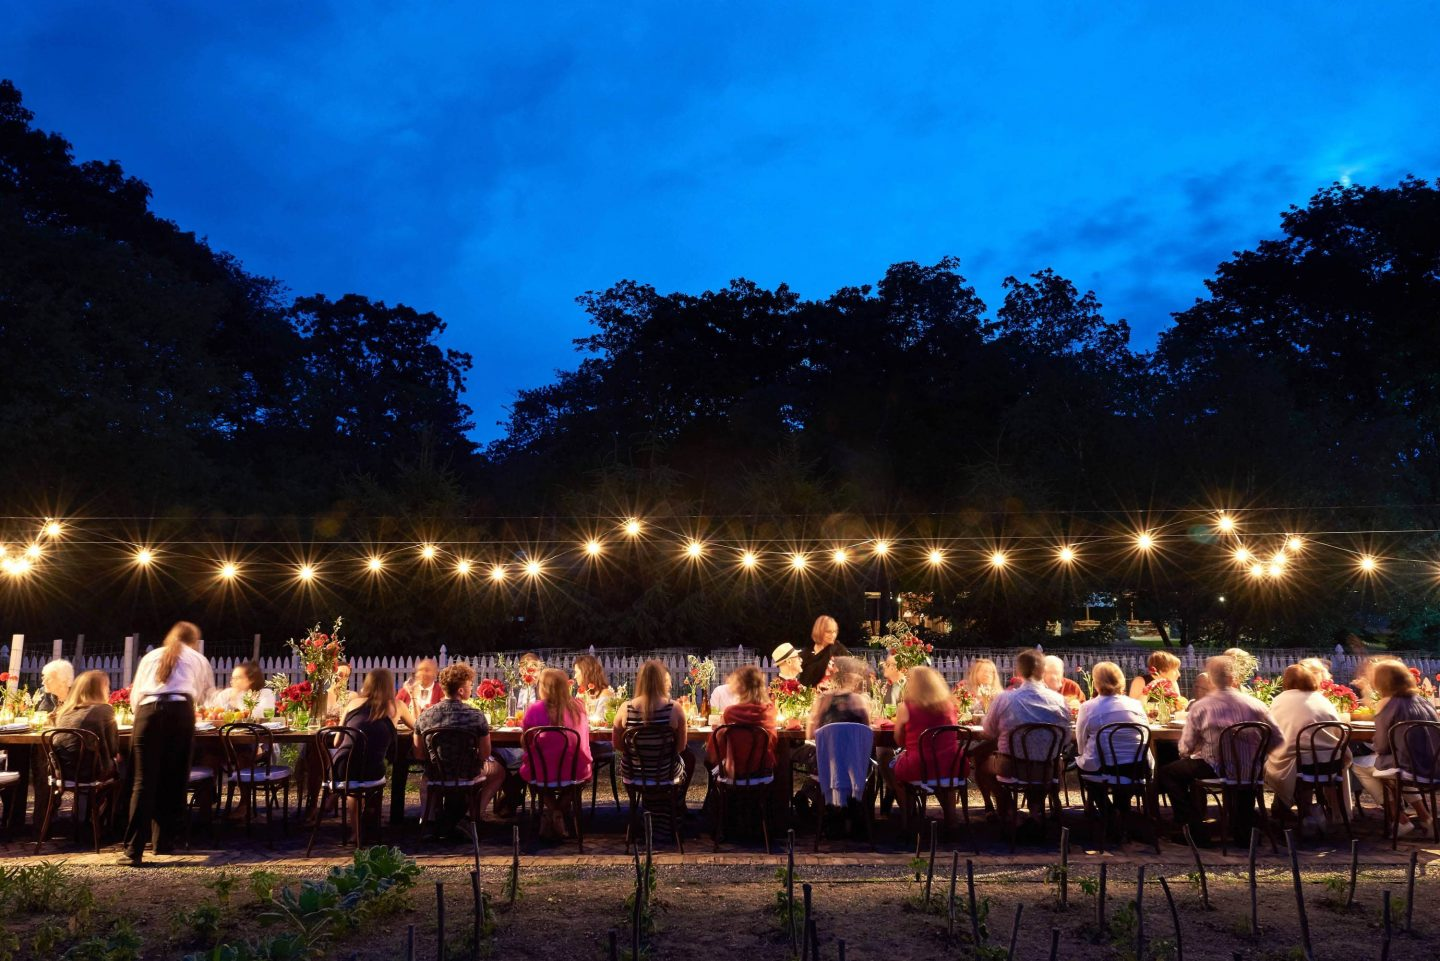 Farm-to-table pre-wedding weekend dinner at this camp-themed wedding weekend at Cedar Lakes Estate in Upstate NY, USA | Photo by Christian Oth Studios